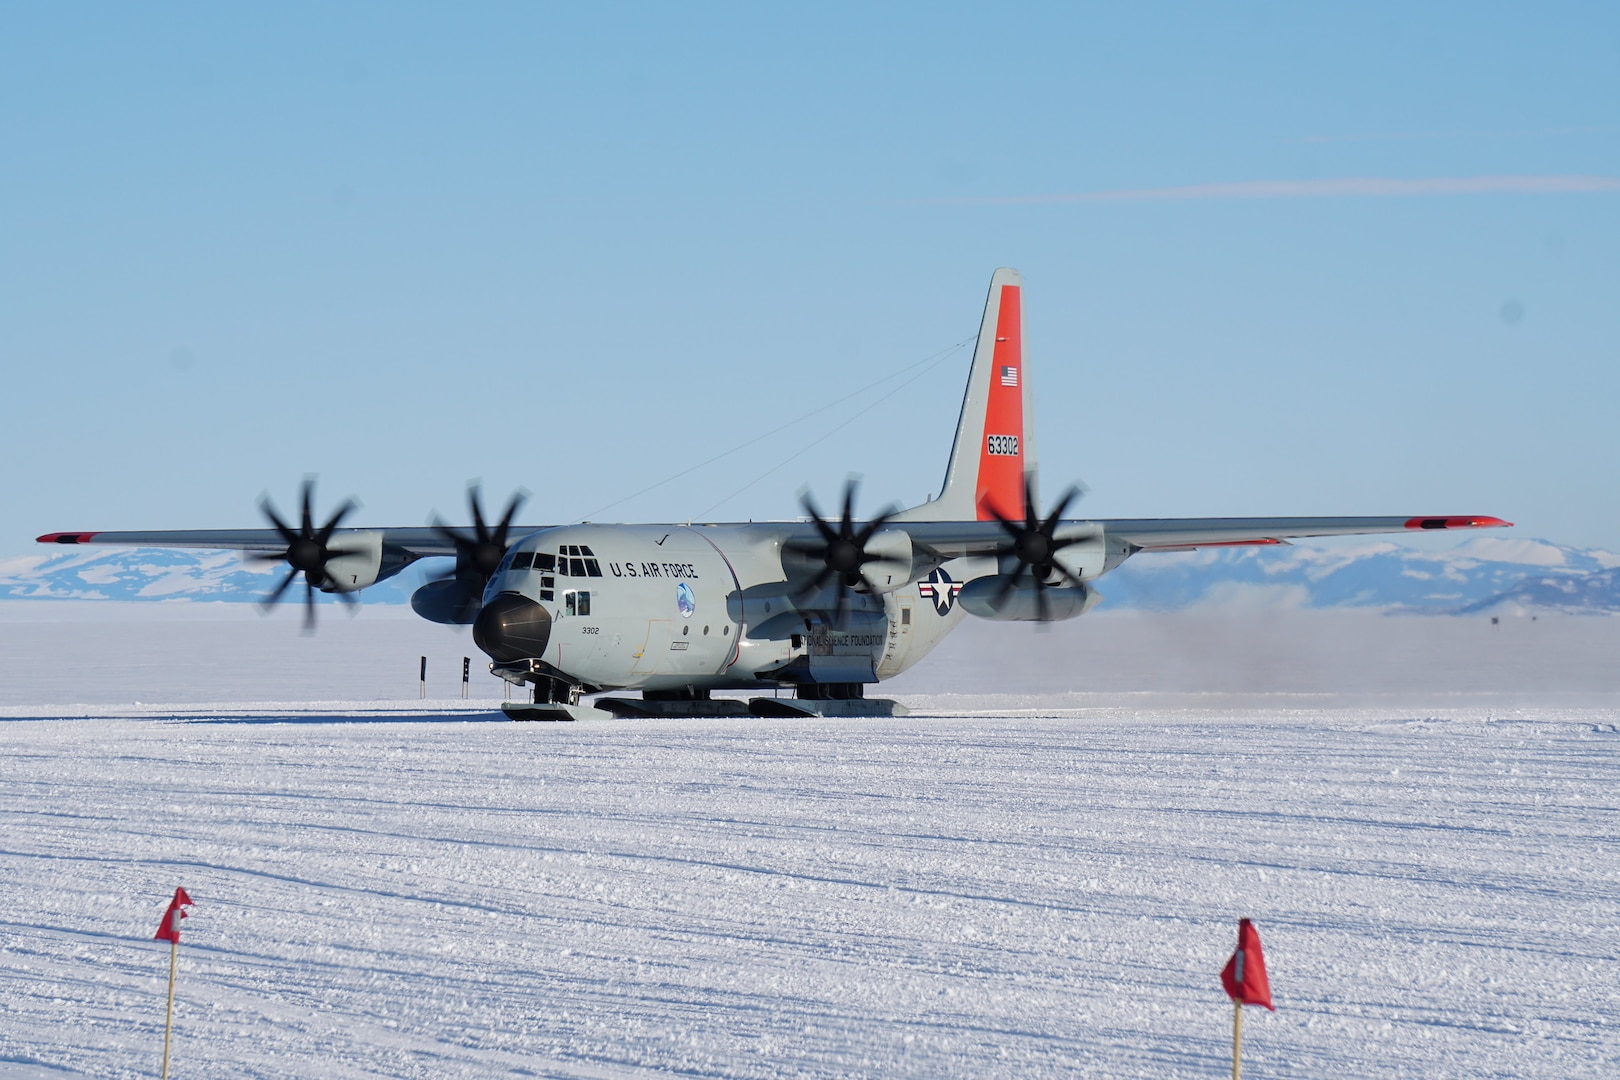 An LC-130 from the 109th Airlift Wing, New York Air National Guard, makes its first landing at Williams Field, McMurdo Station, Antarctica kicking off the 2019-2020 season in November 2019.